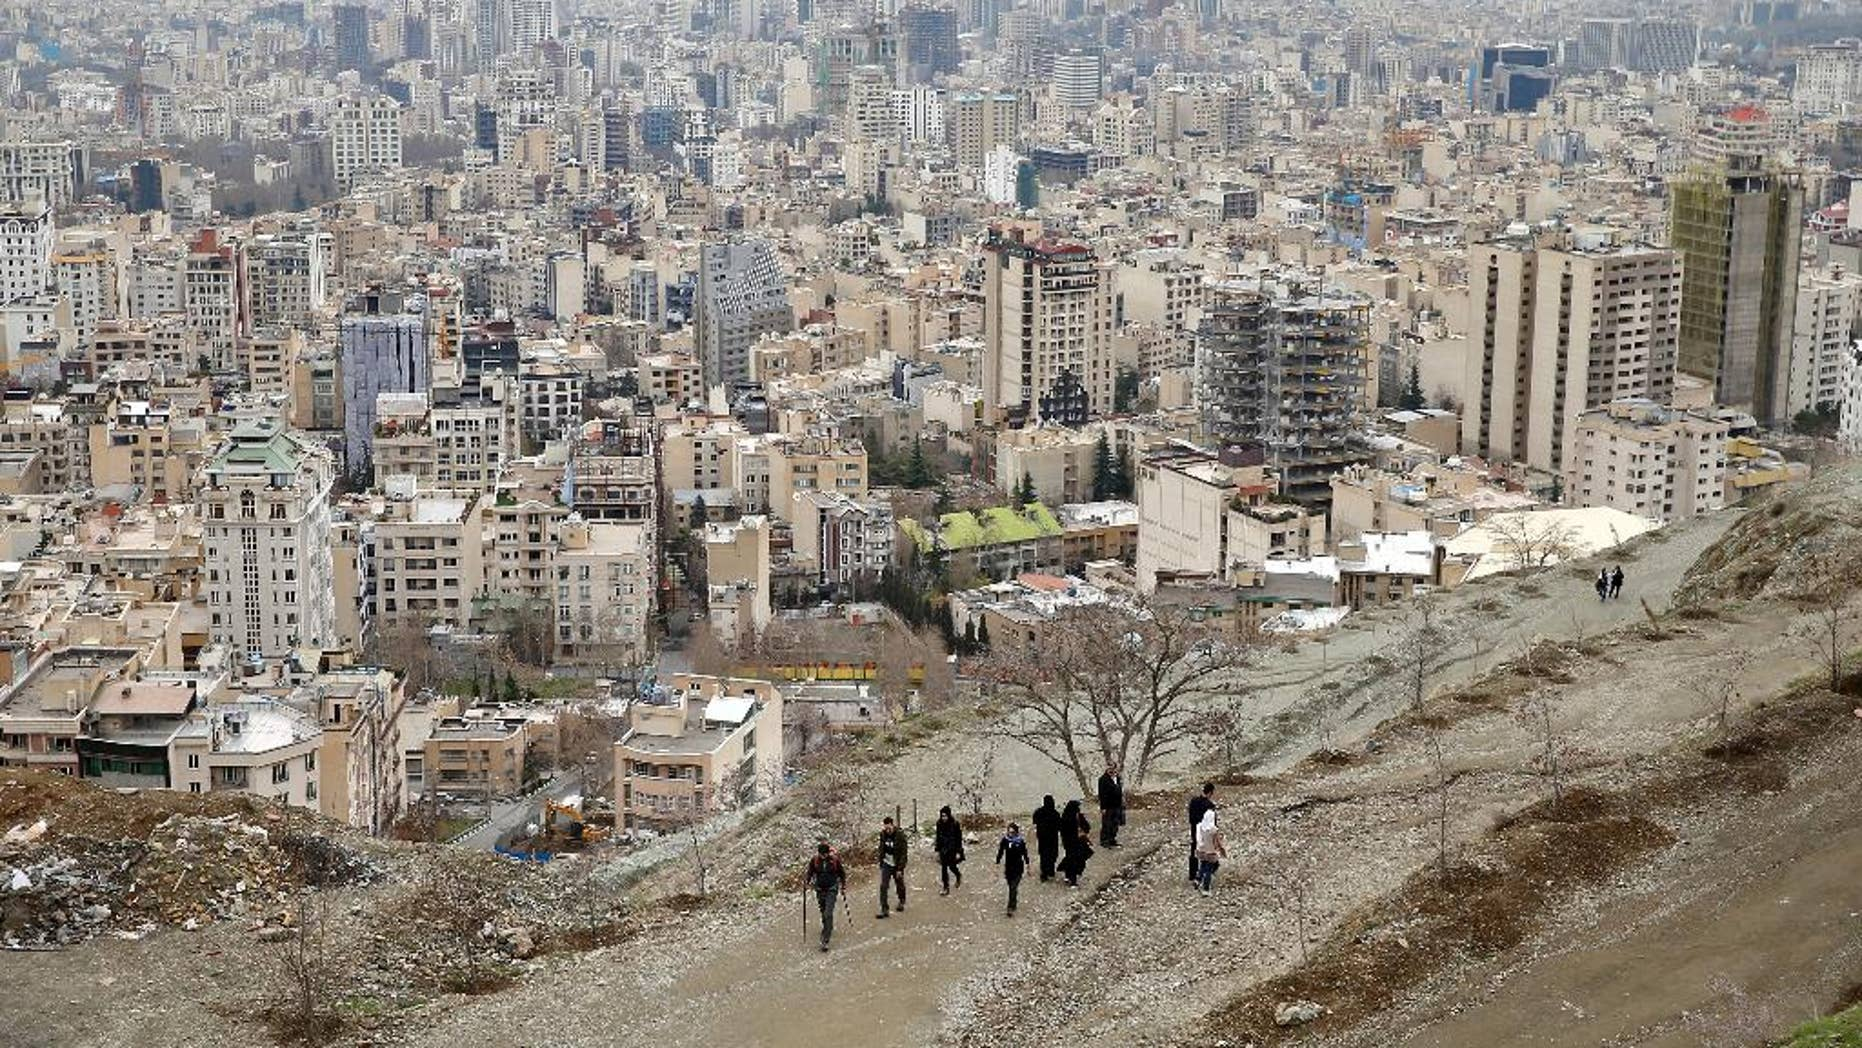 This Sunday, April, 2, 2017, shows Iranian hikers coming down from the mountain at the Tochal mountainous area in northern Tehran, Iran. Two days before what has been described as Tehran's first international marathon, a top Iranian sports official cannot confirm whether Americans will participate and says women will be forced to run separately from men. (AP Photo/Ebrahim Noroozi)